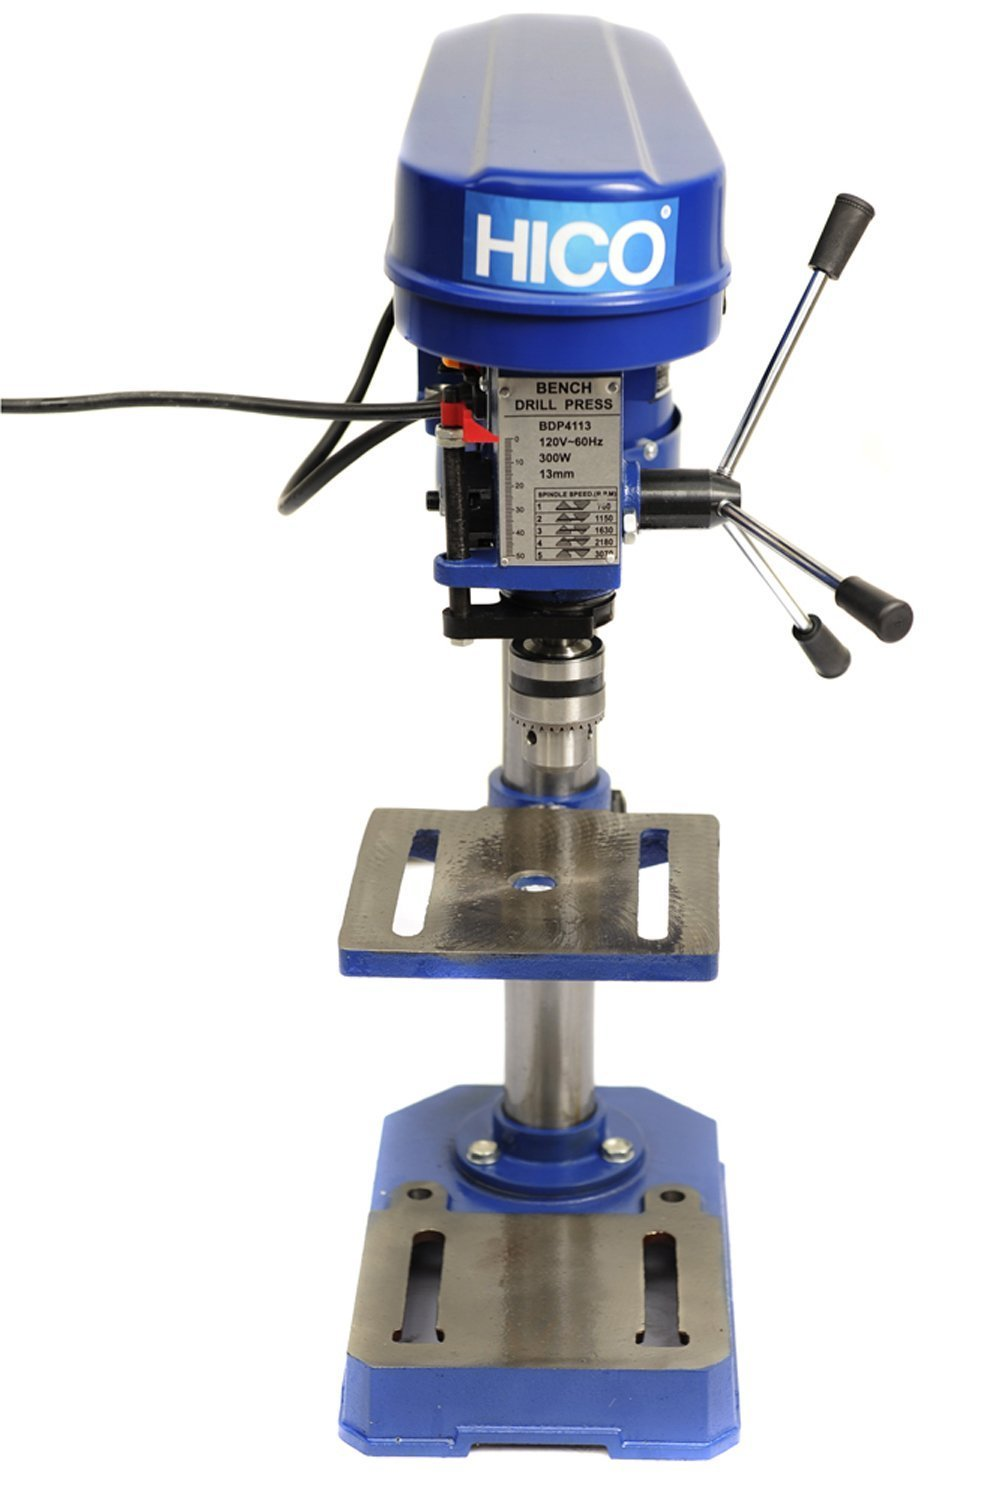 HICO Bench Top Drill Press - 8 Inch Adjustable Height, 5 Speed Motor, Cast Iron Table DP4113 by HICO (Image #4)